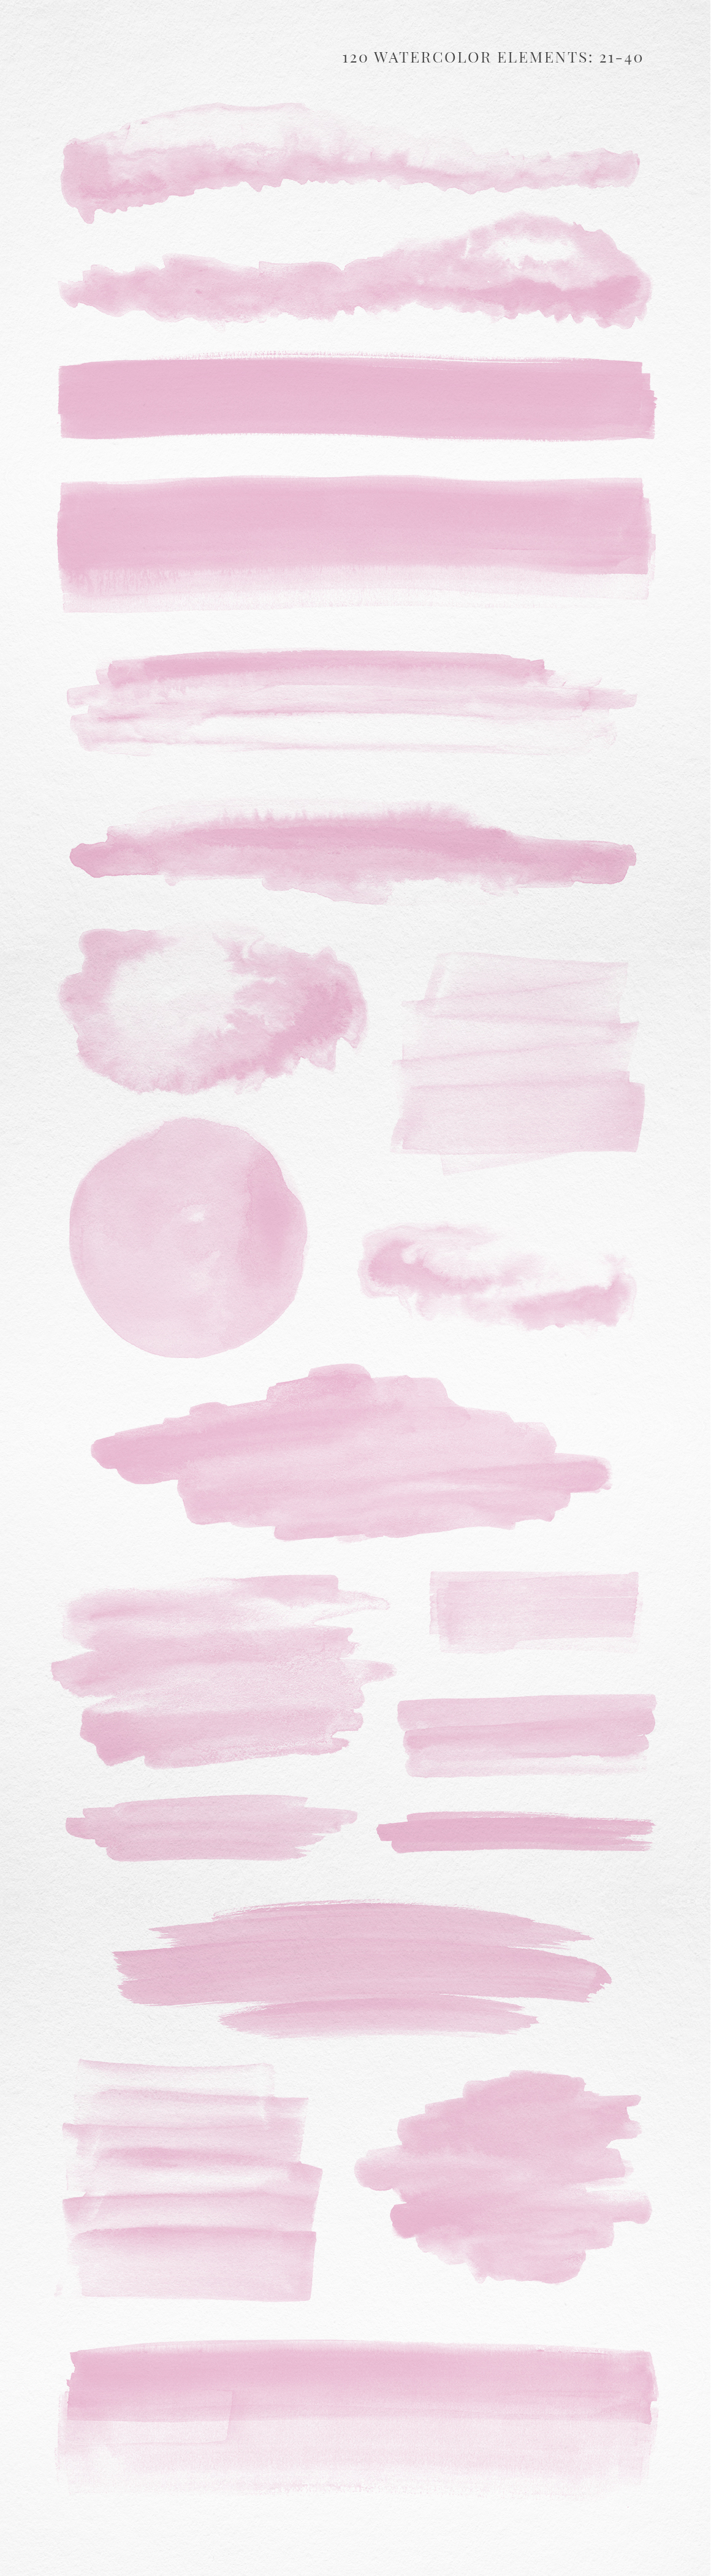 120 Pink Watercolor Texture Elements example image 3